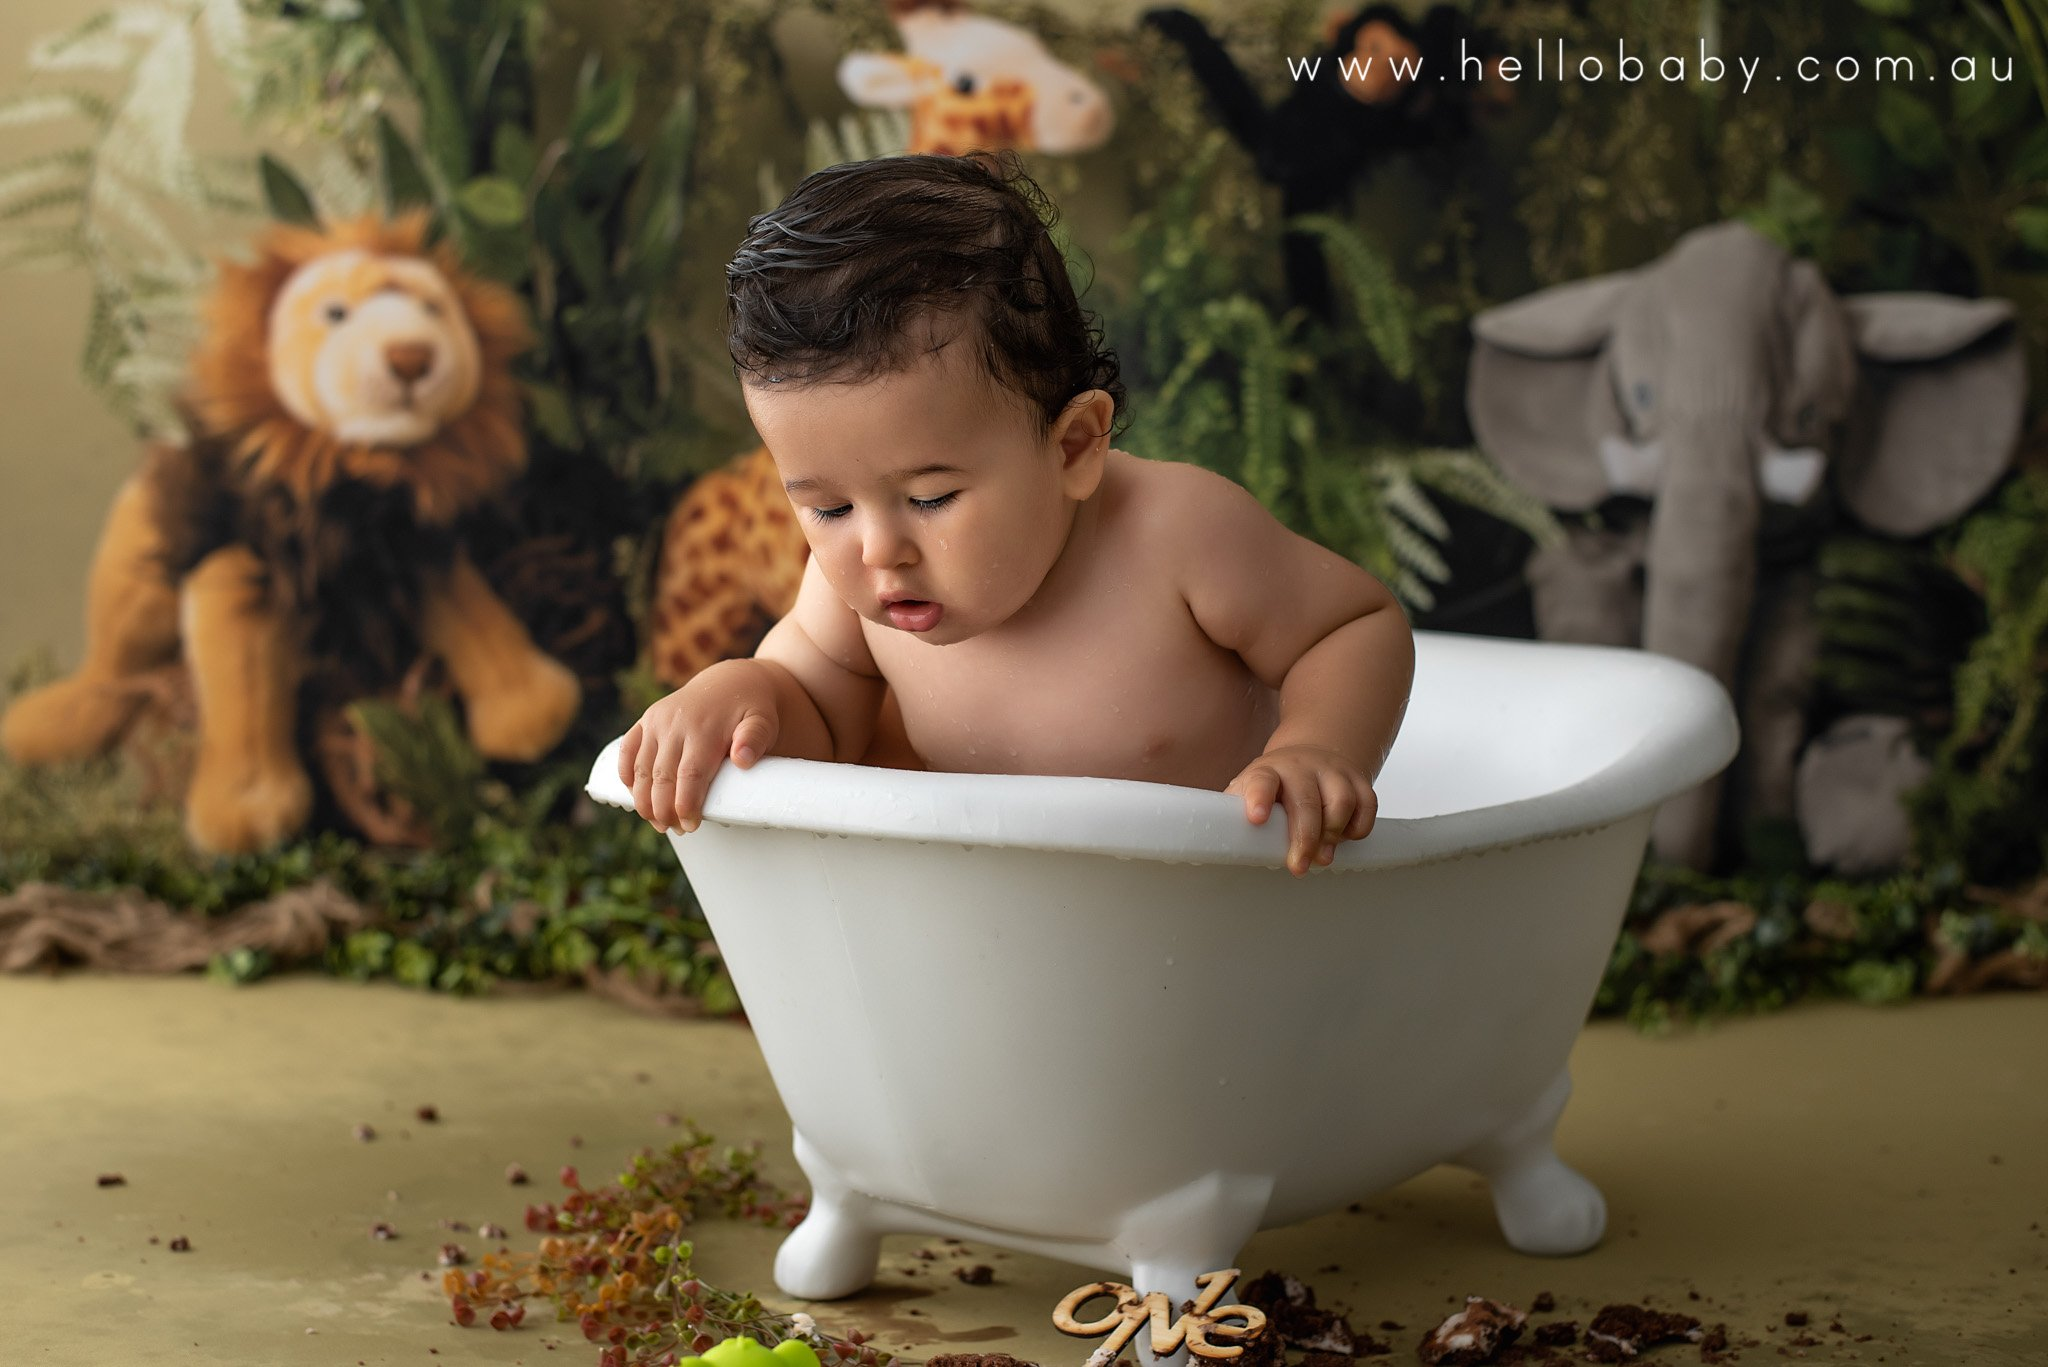 a sweet little boy sitting in a small white baby bath tub looking out onto the ground as if he lost something. It seems his bath toy has fallen out of the bath and he is looking for it trying to pick it up.